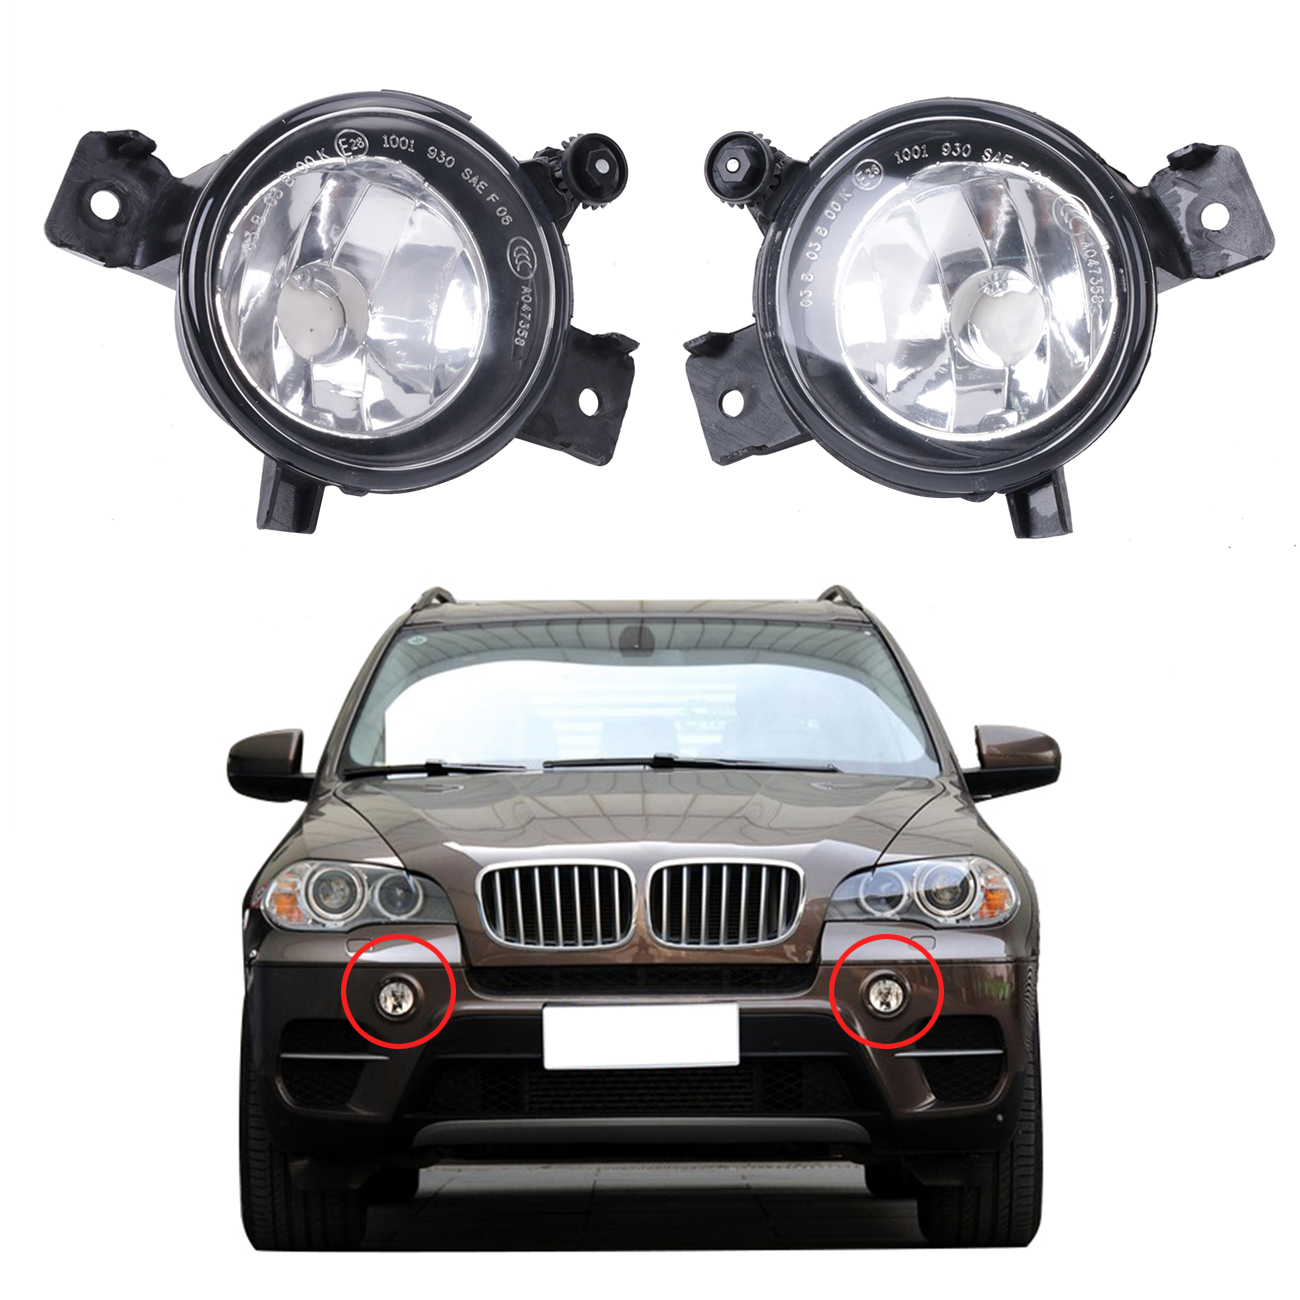 Left / Right Front Bumper Fog Light Clear Driving Lamps Foglamp Housing For BMW E70 X5 2011 2012 2013 Car Lighting #W086<br>